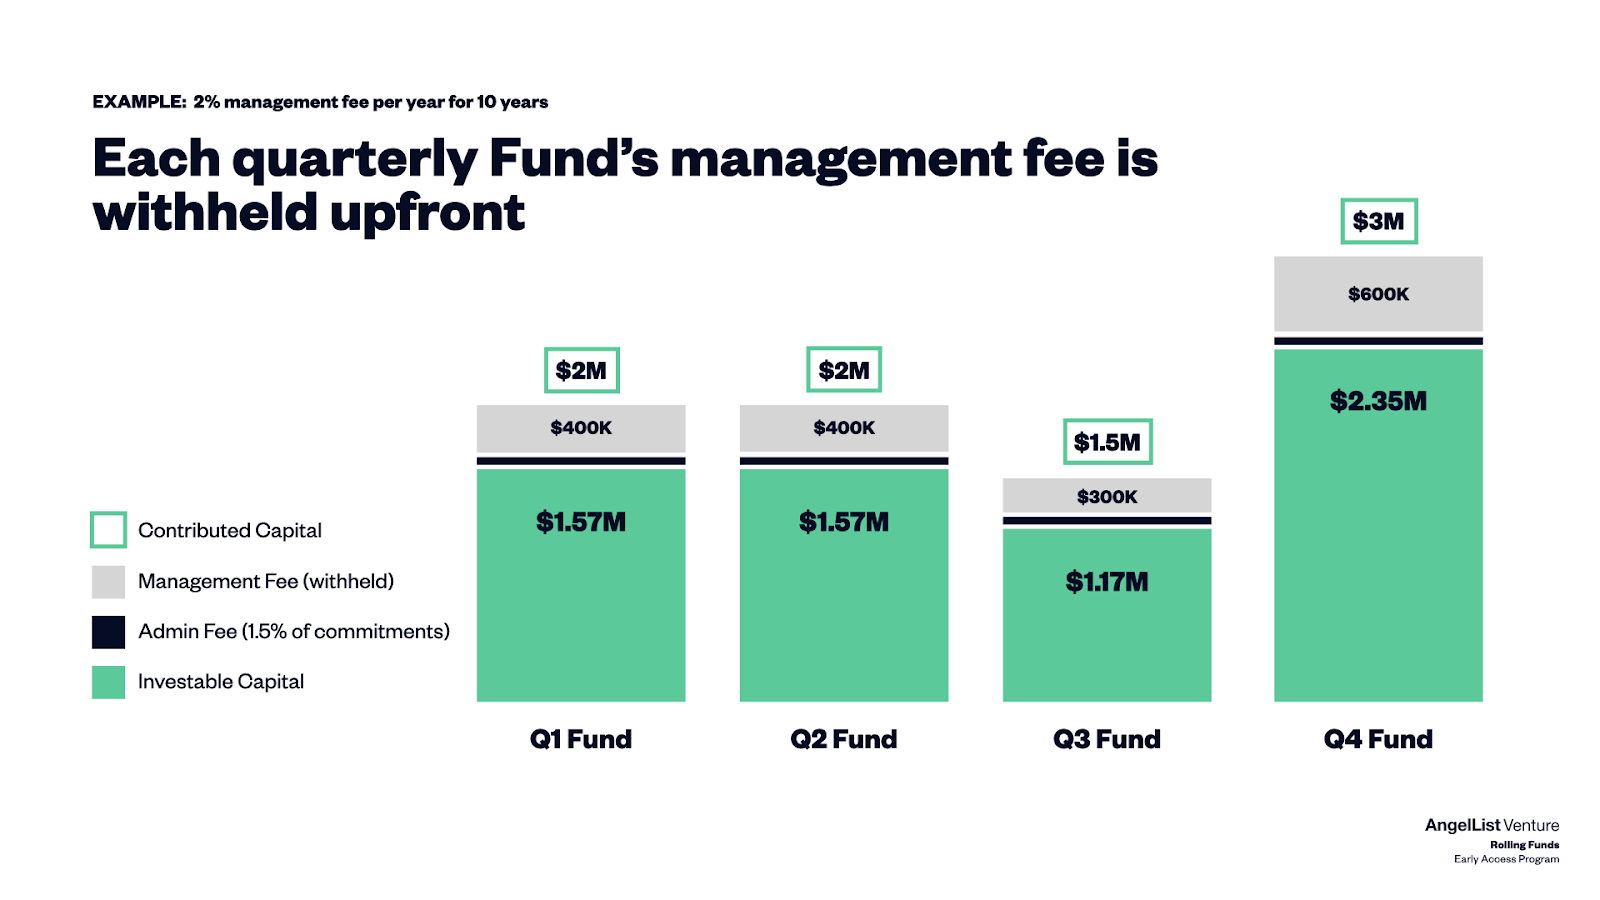 rolling fund fee structure